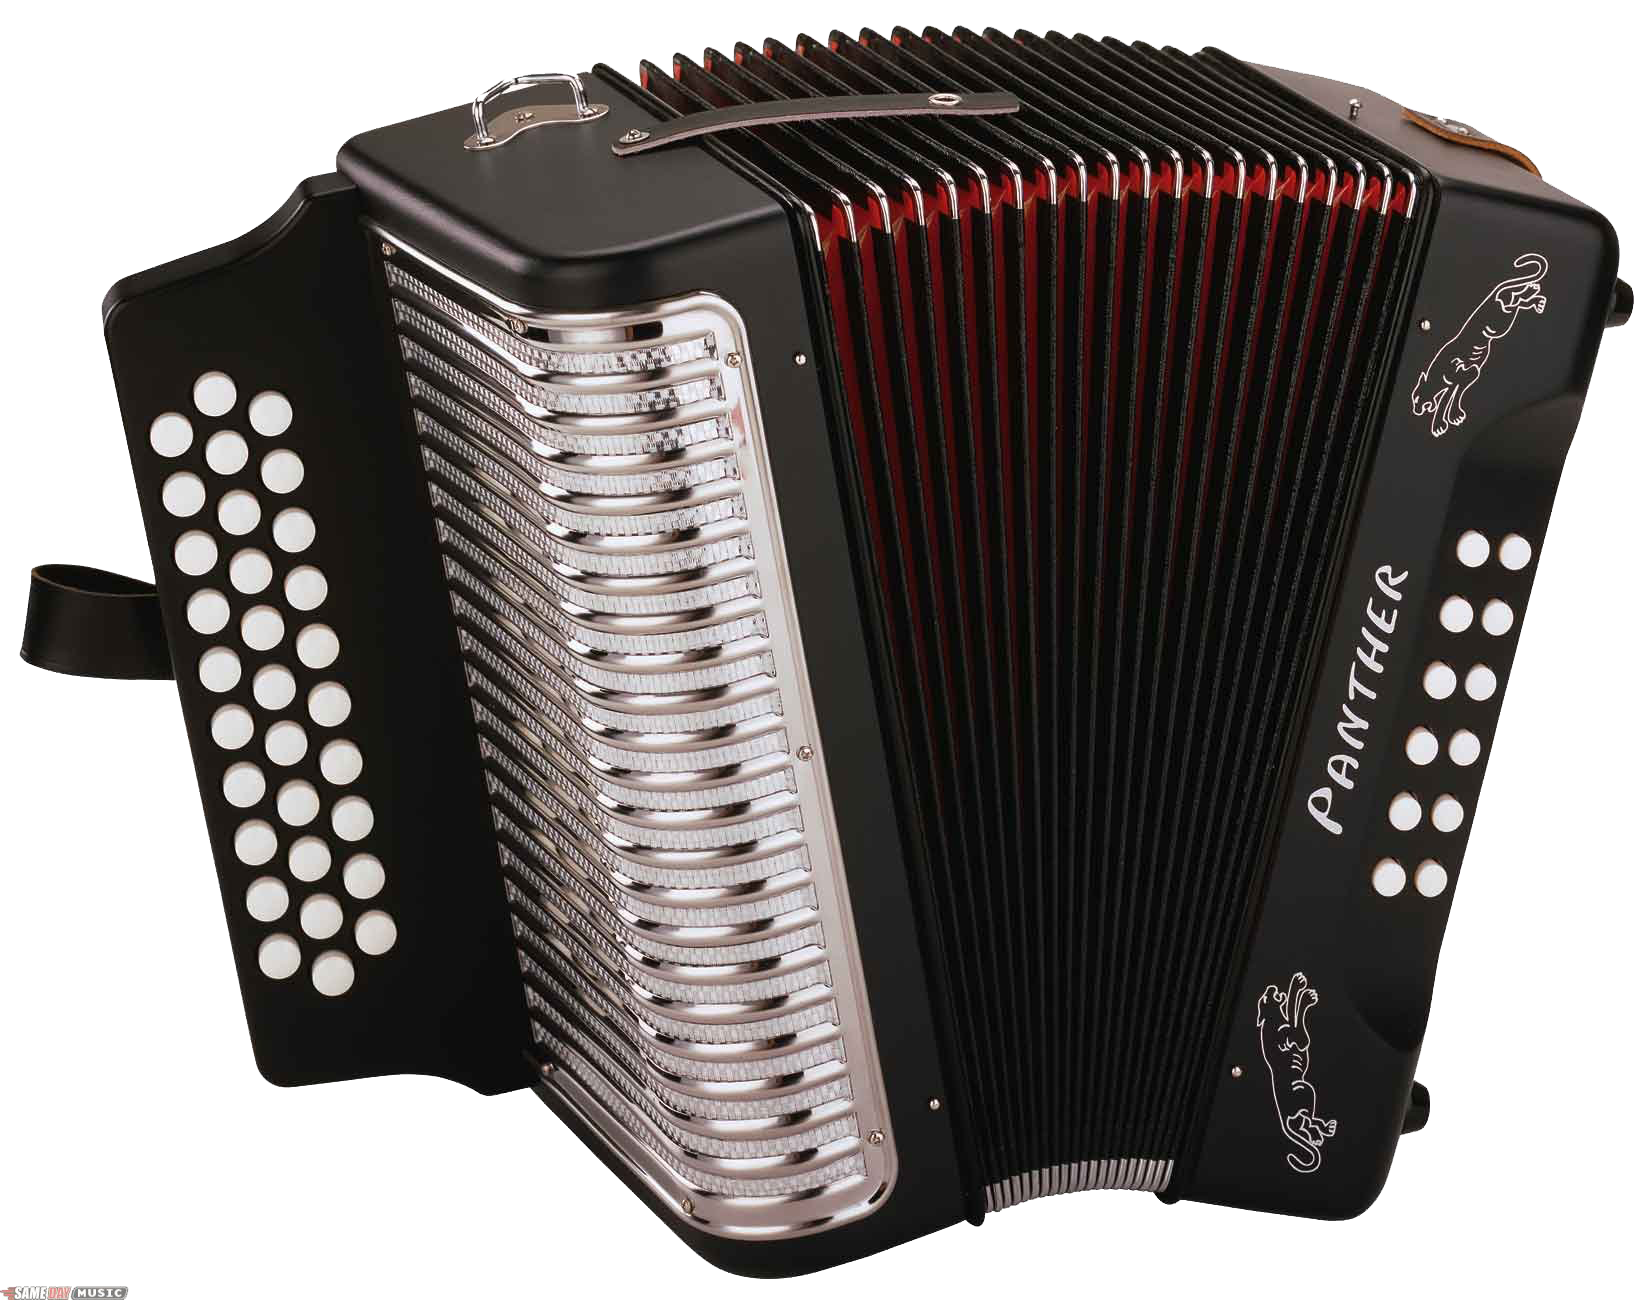 Accordion PNG Image - Accordion PNG